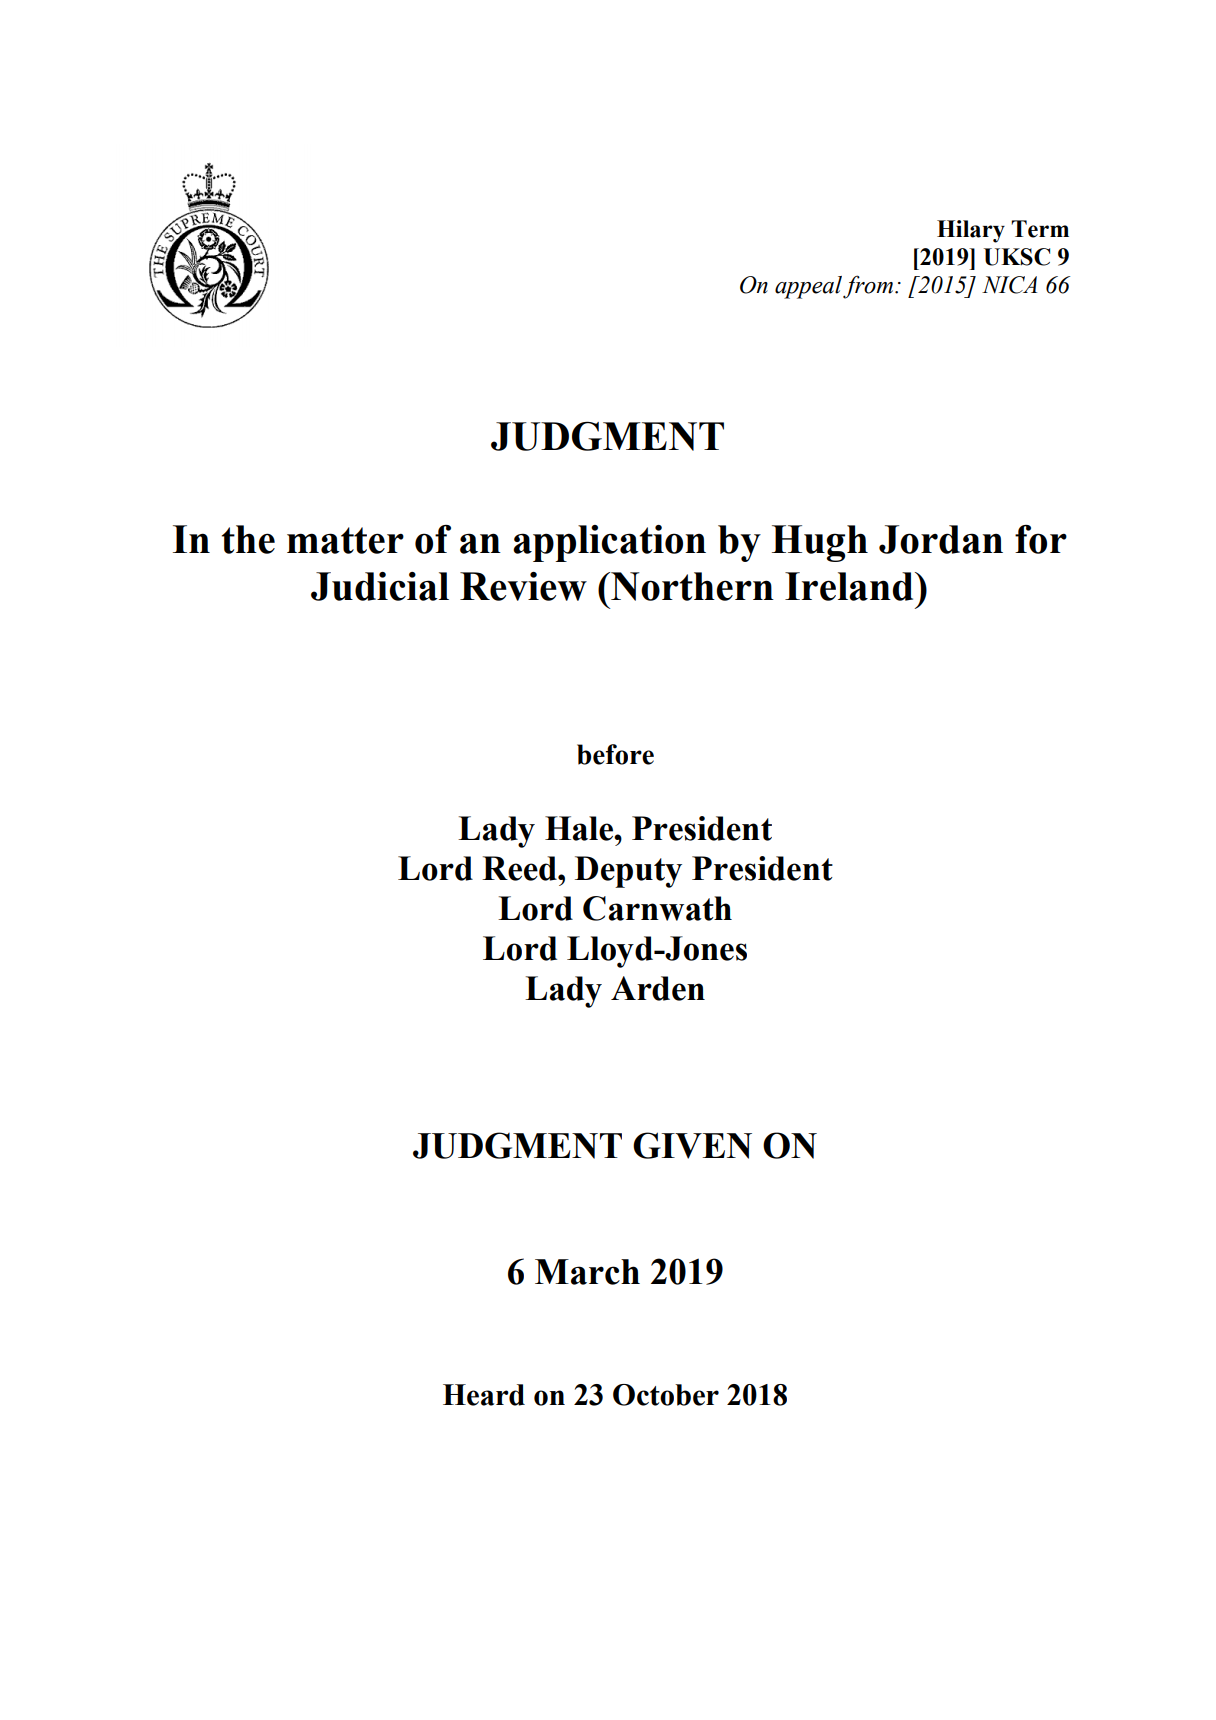 Pearse Jordan Case: UK Supreme Court Judgment – In the matter of an application by Hugh Jordan for Judicial Review